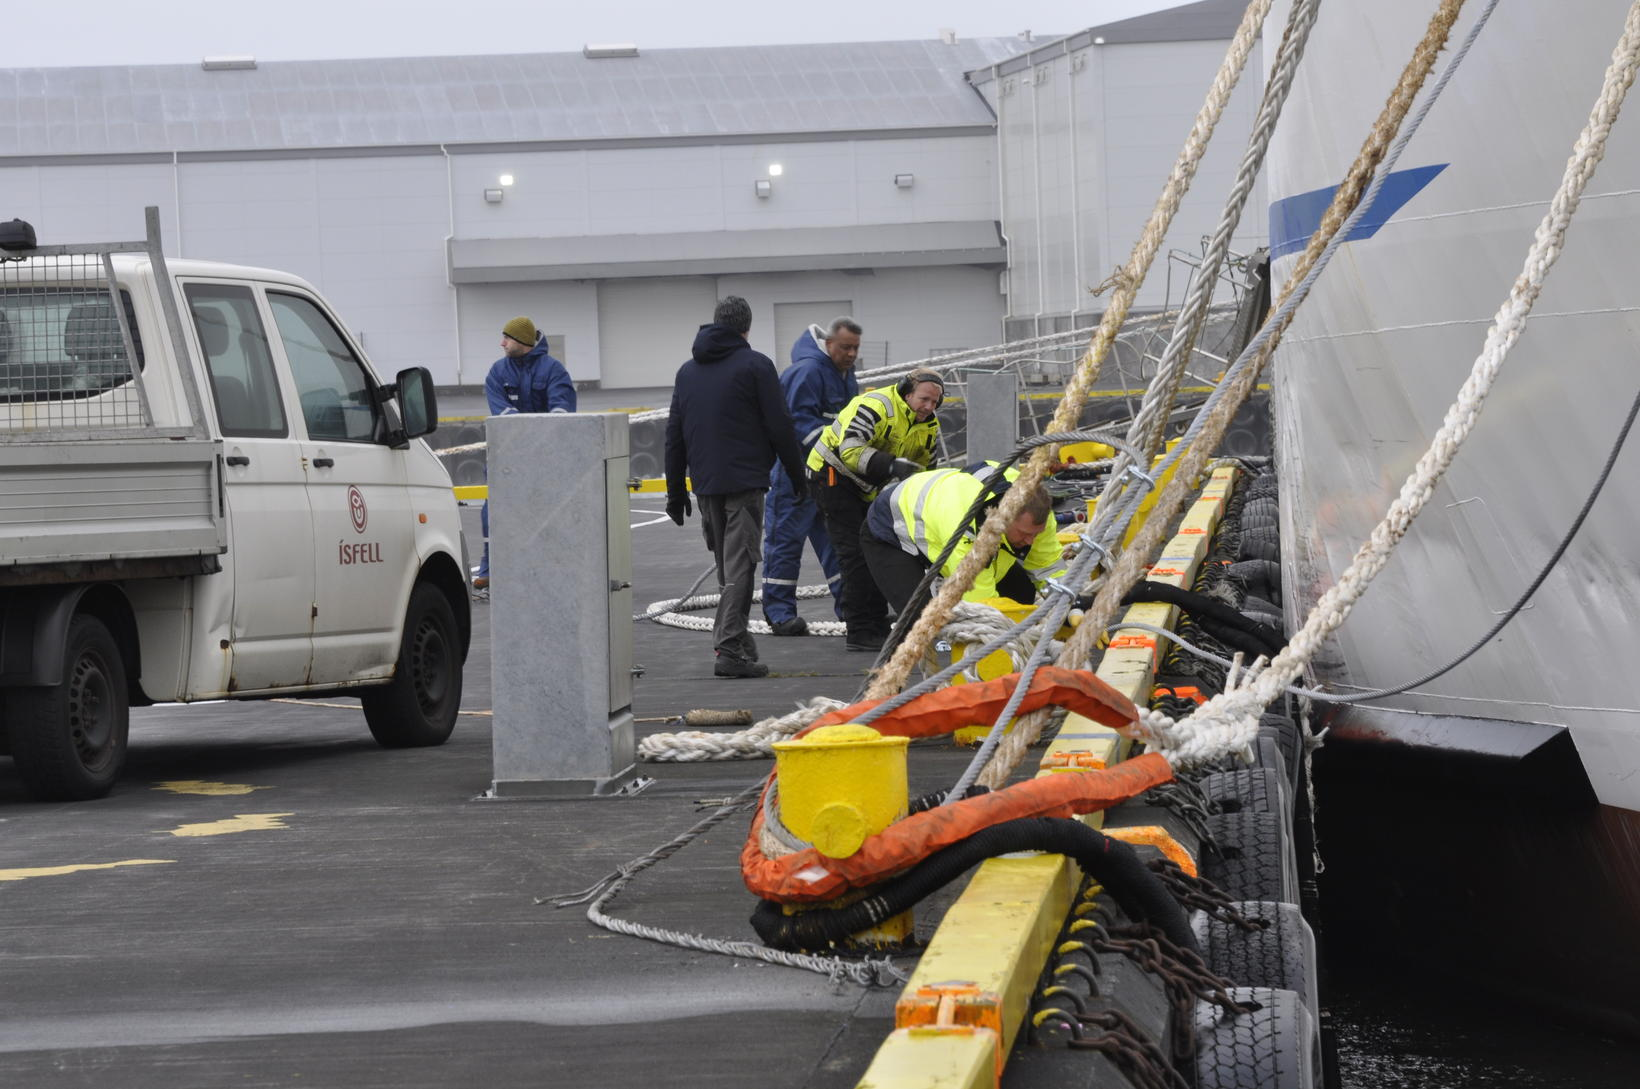 Workers tie the ship back to the dock.